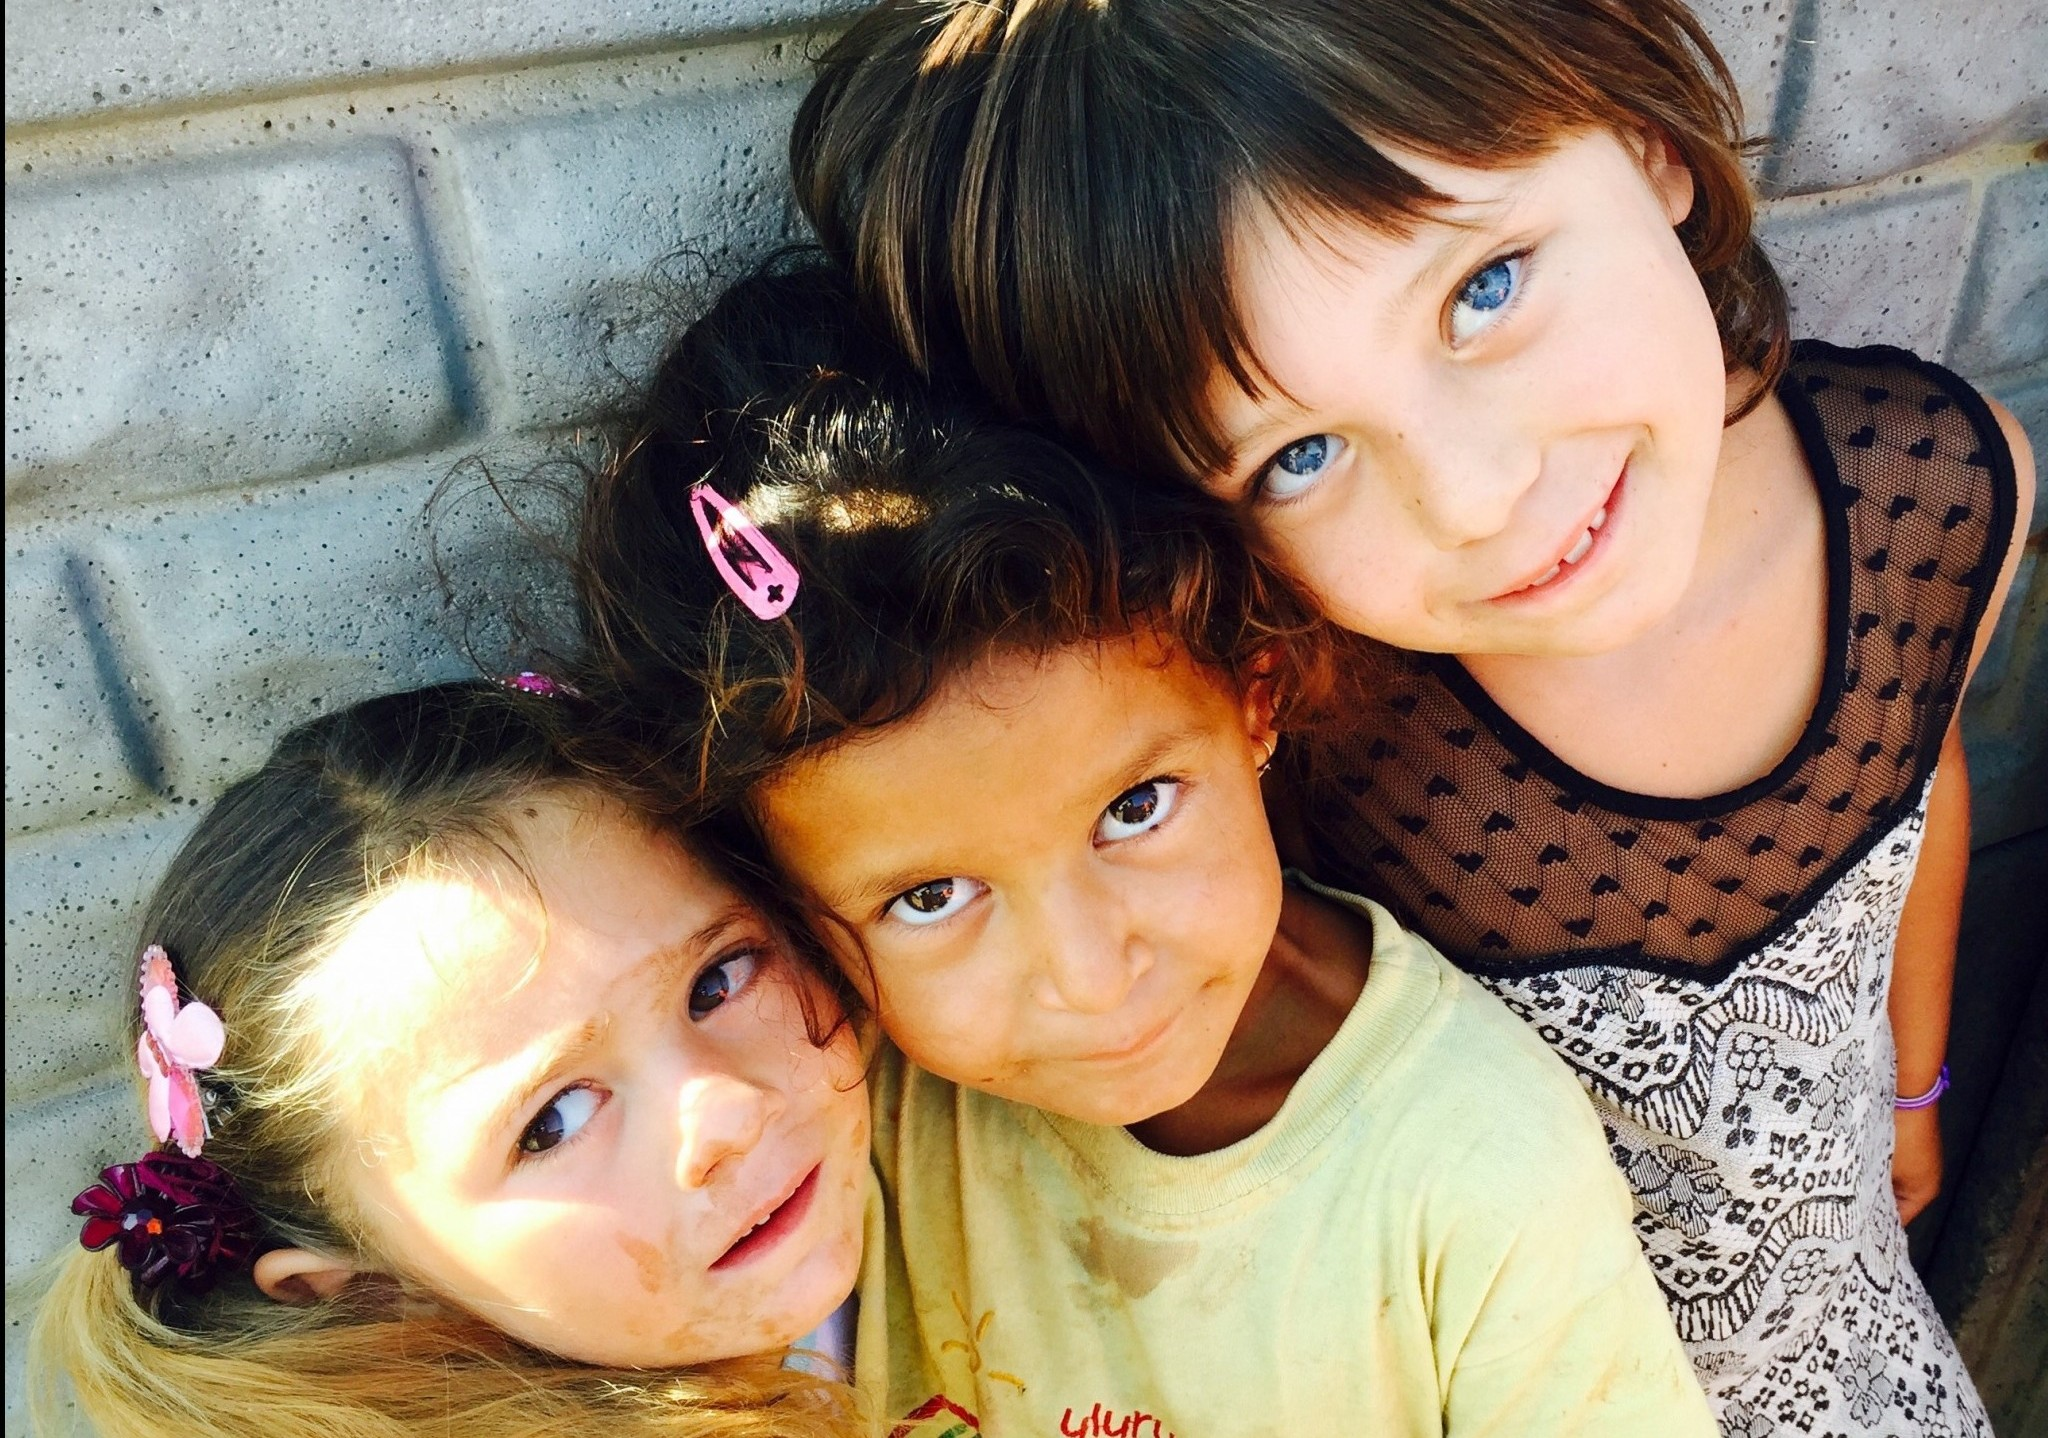 Specialized missions trips in the coming year